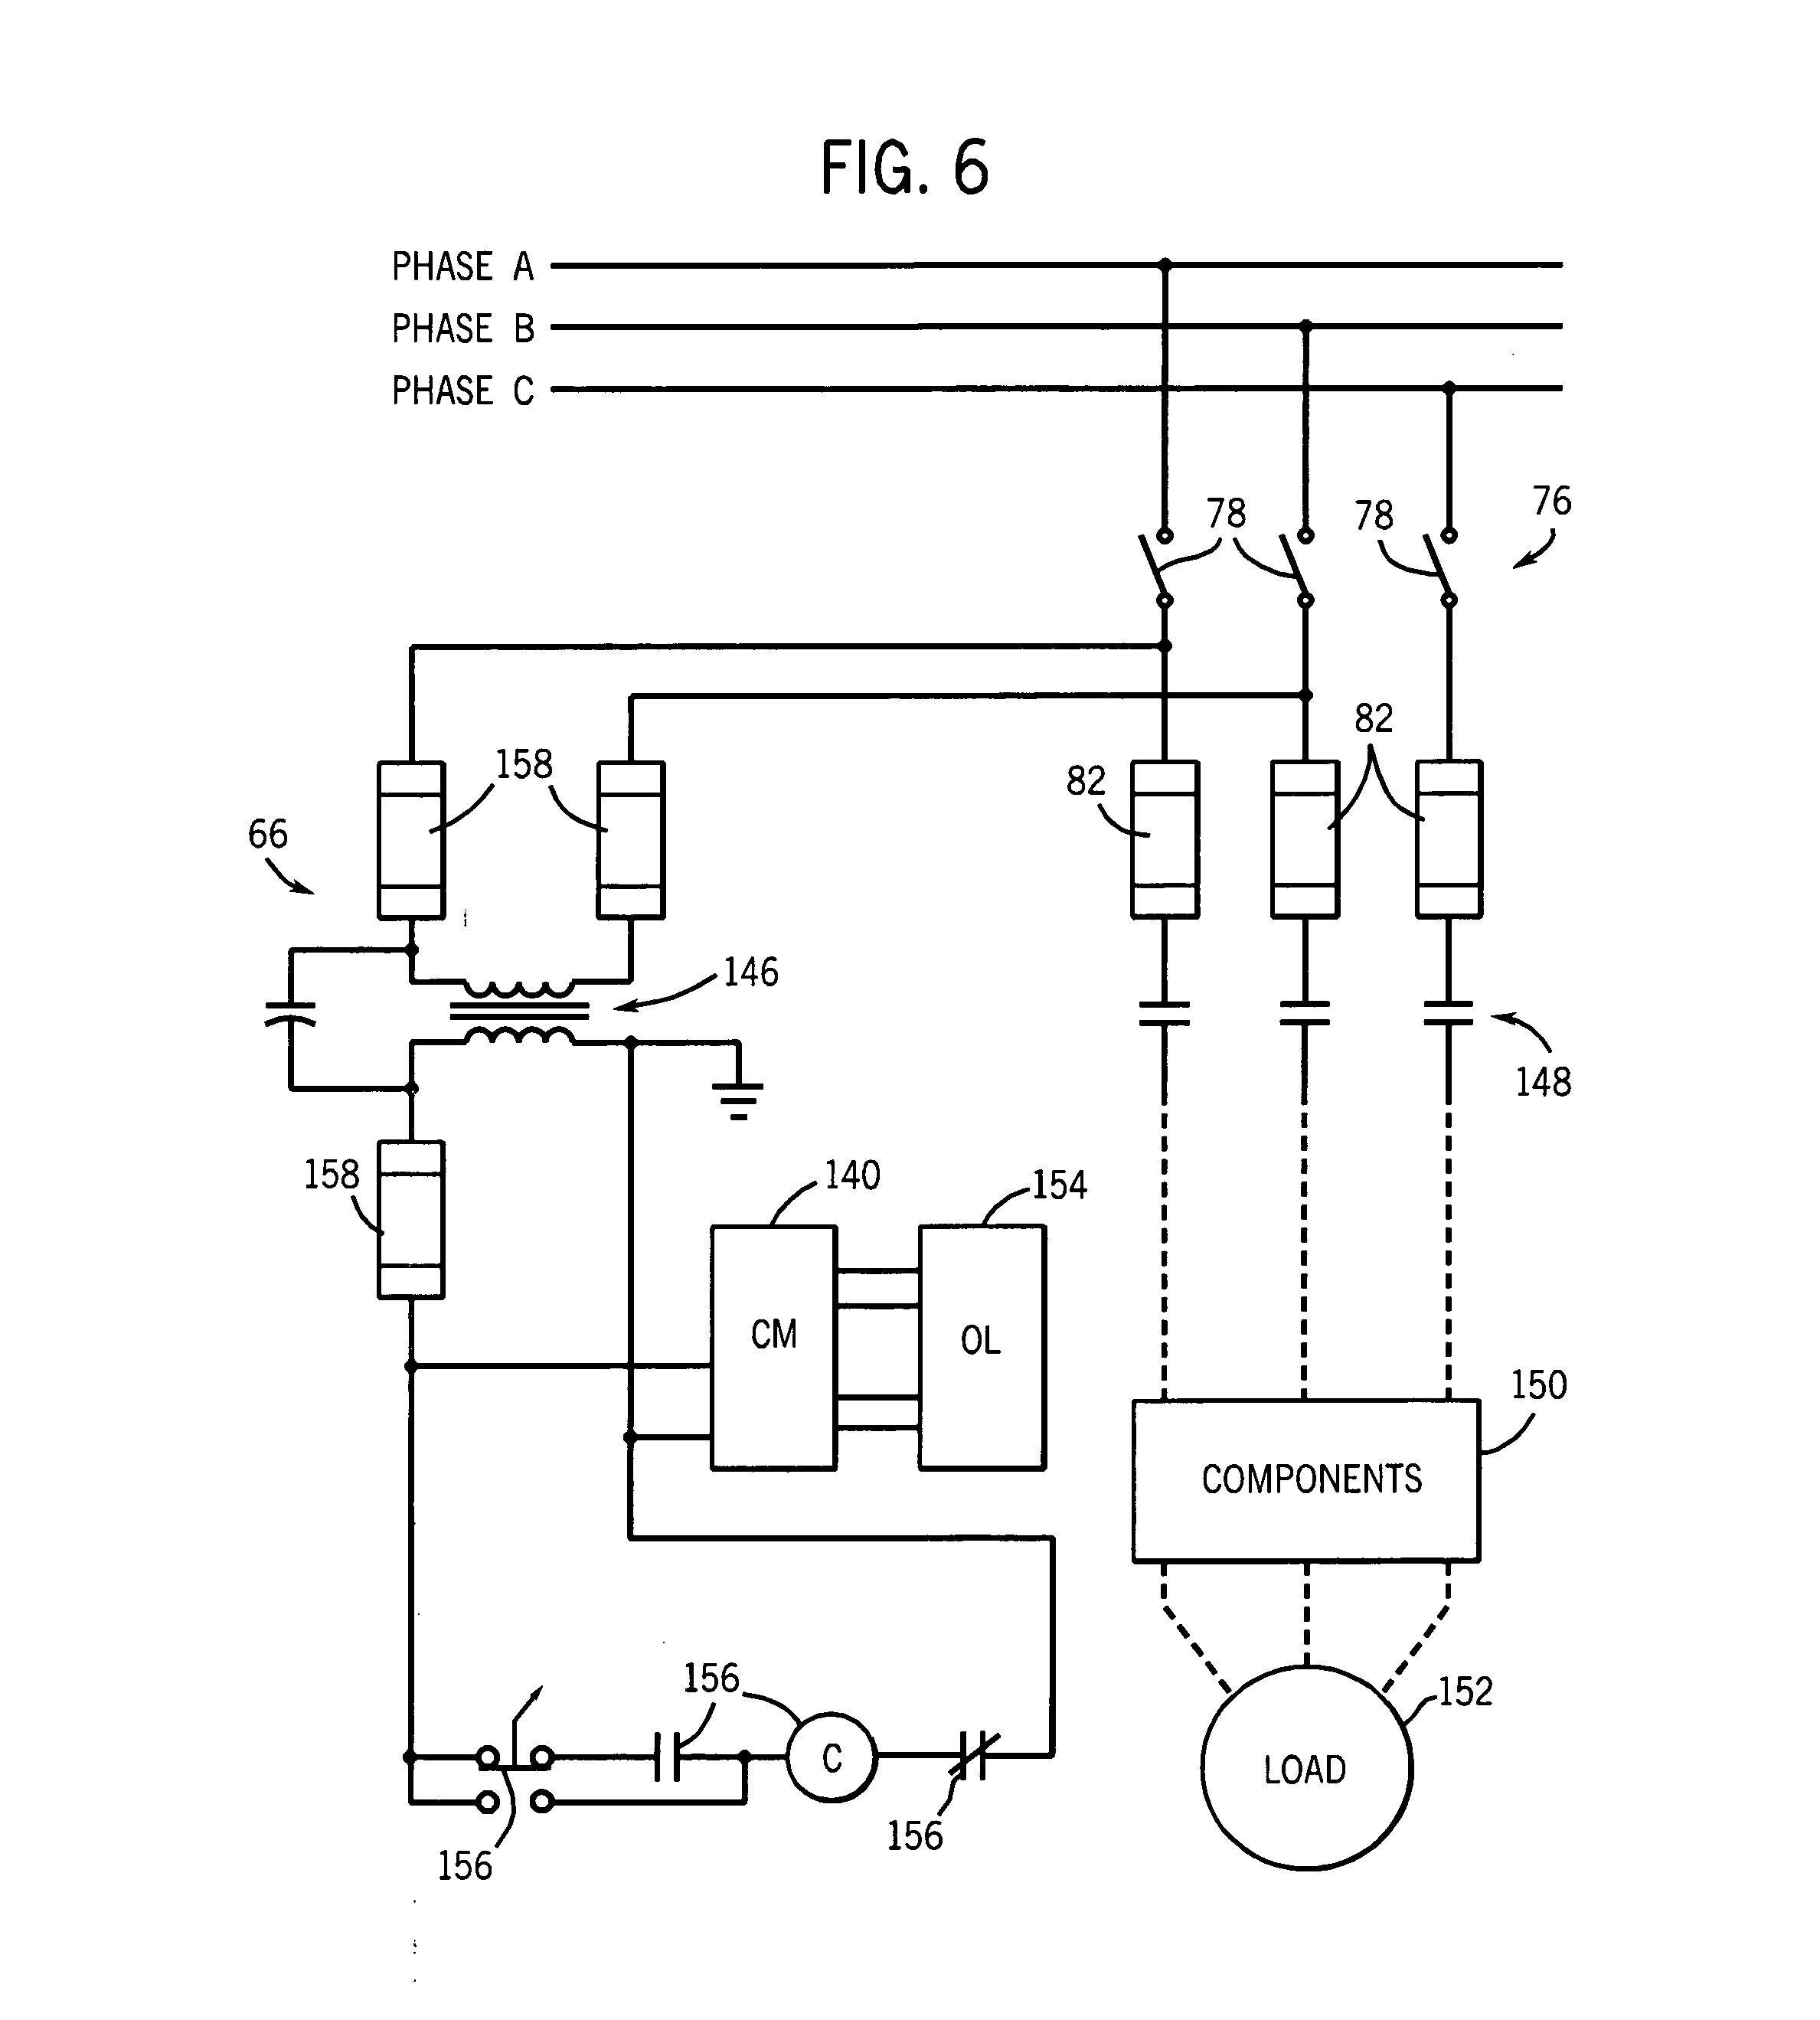 allen bradley soft starter wiring diagram Download-Wiring Diagram for Furnas Motor Starters Best Wiring Diagram Allen Bradley Rotating Beacon Wire Center • 19-f